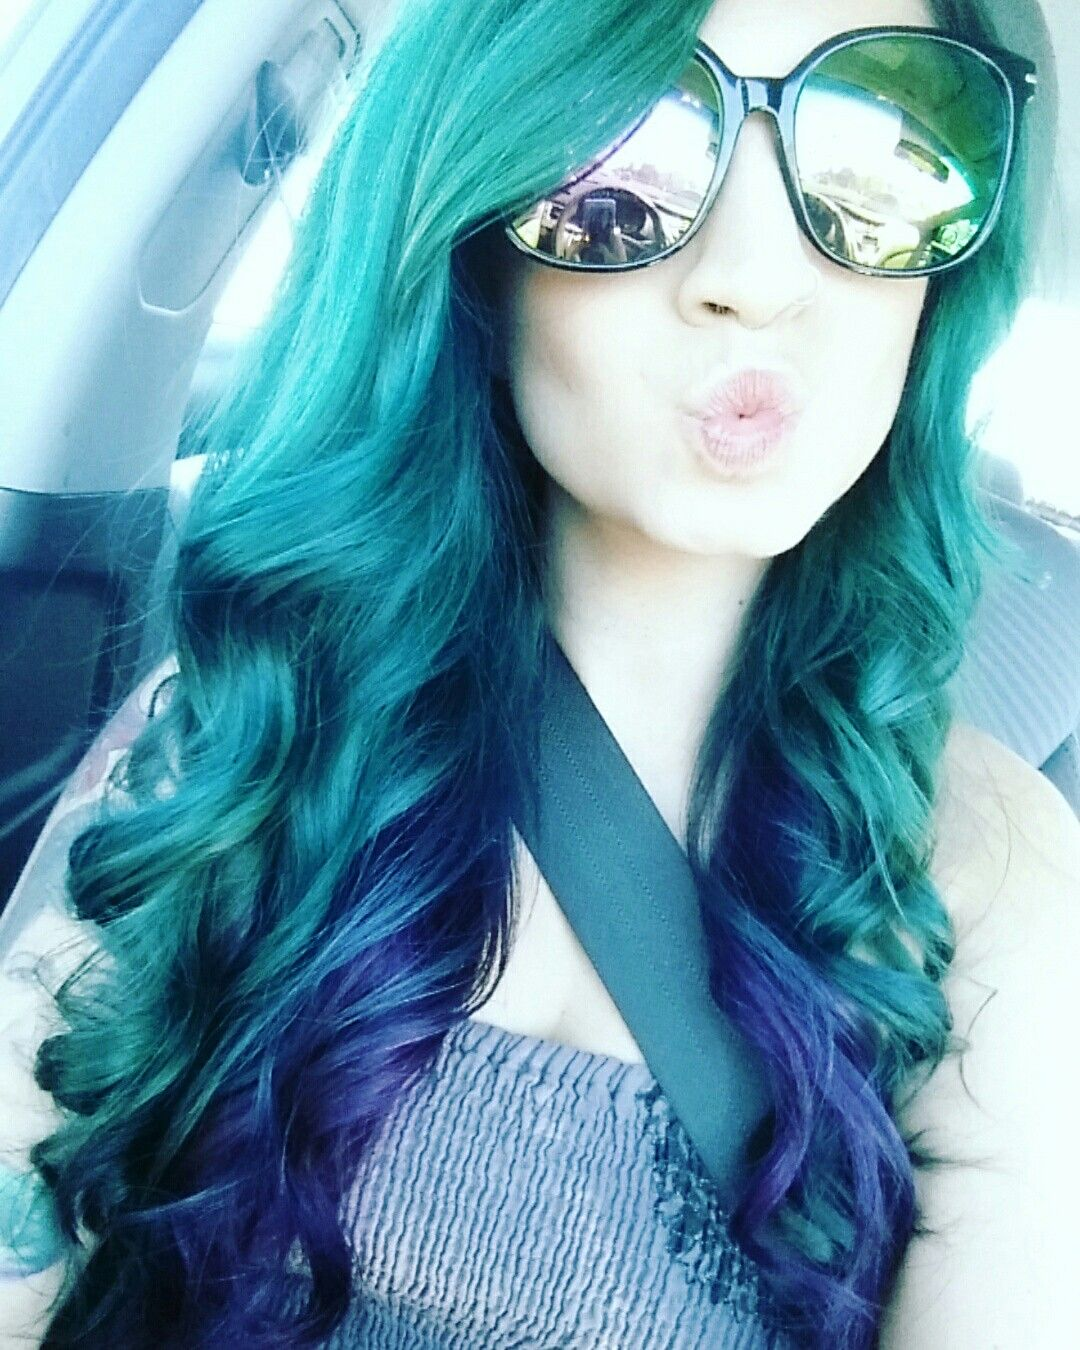 Mermaid Hair Joico Intensity Mermaid Blue Mixed With Peacock Green